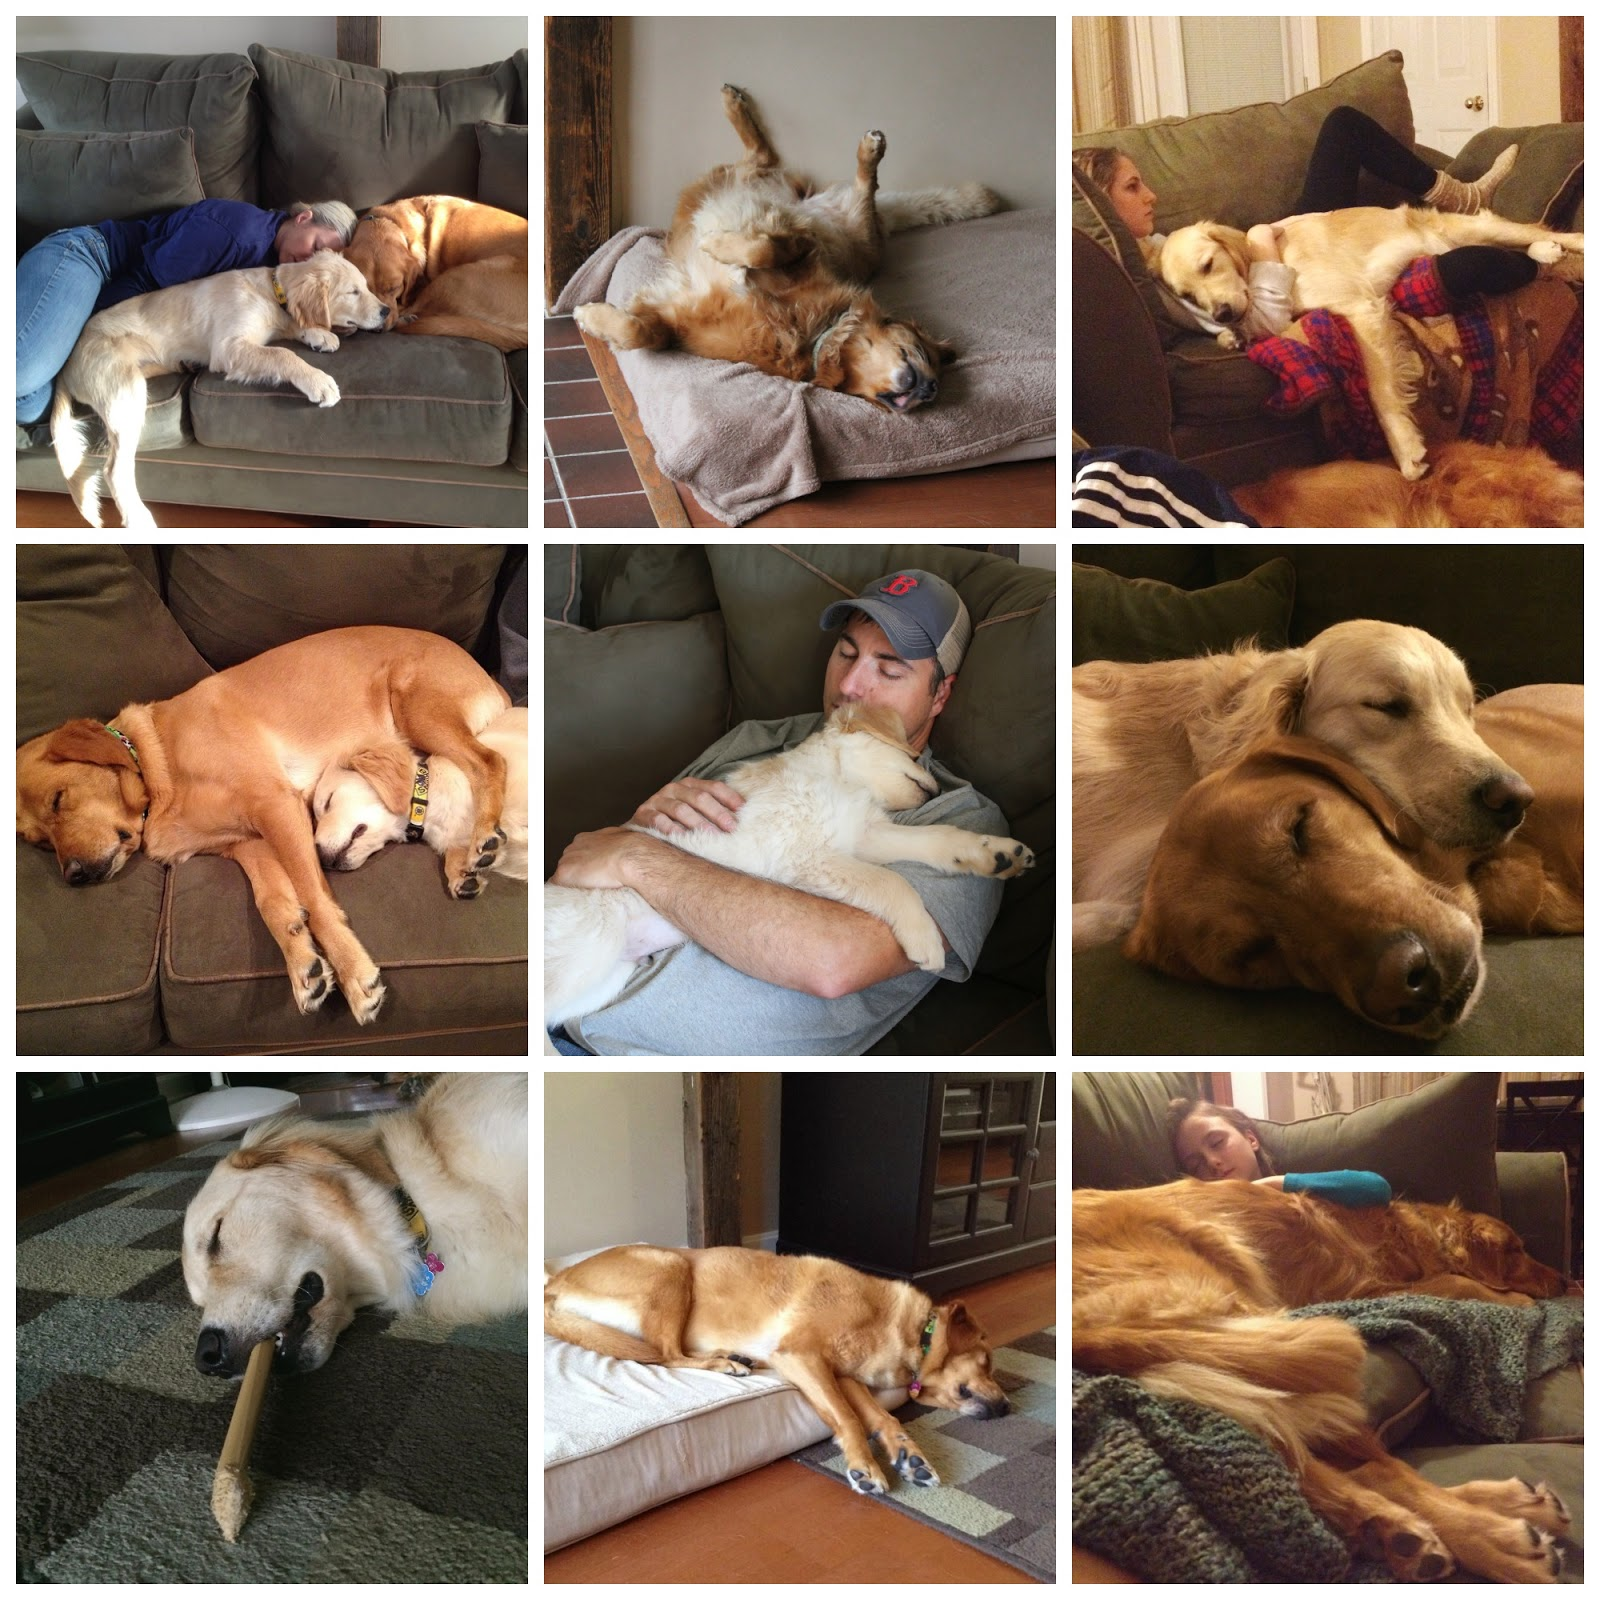 dogs and family napping together